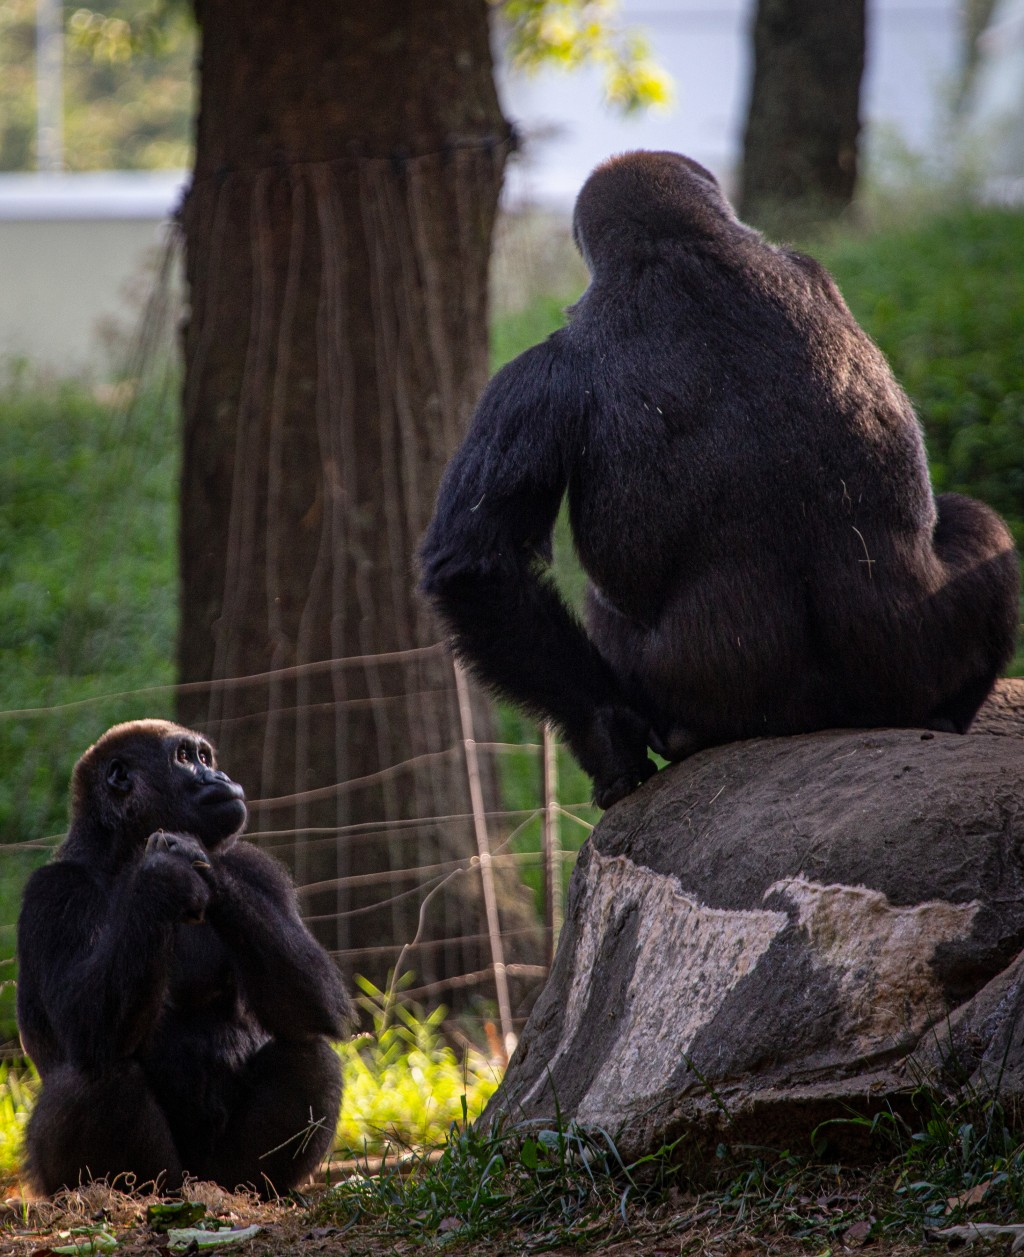 Western lowland gorillas are seen in their habitat at Zoo Atlanta on Tuesday, Sept. 14, 2021, in Atlanta. Nearly all of the zoo's 20 gorillas are show...